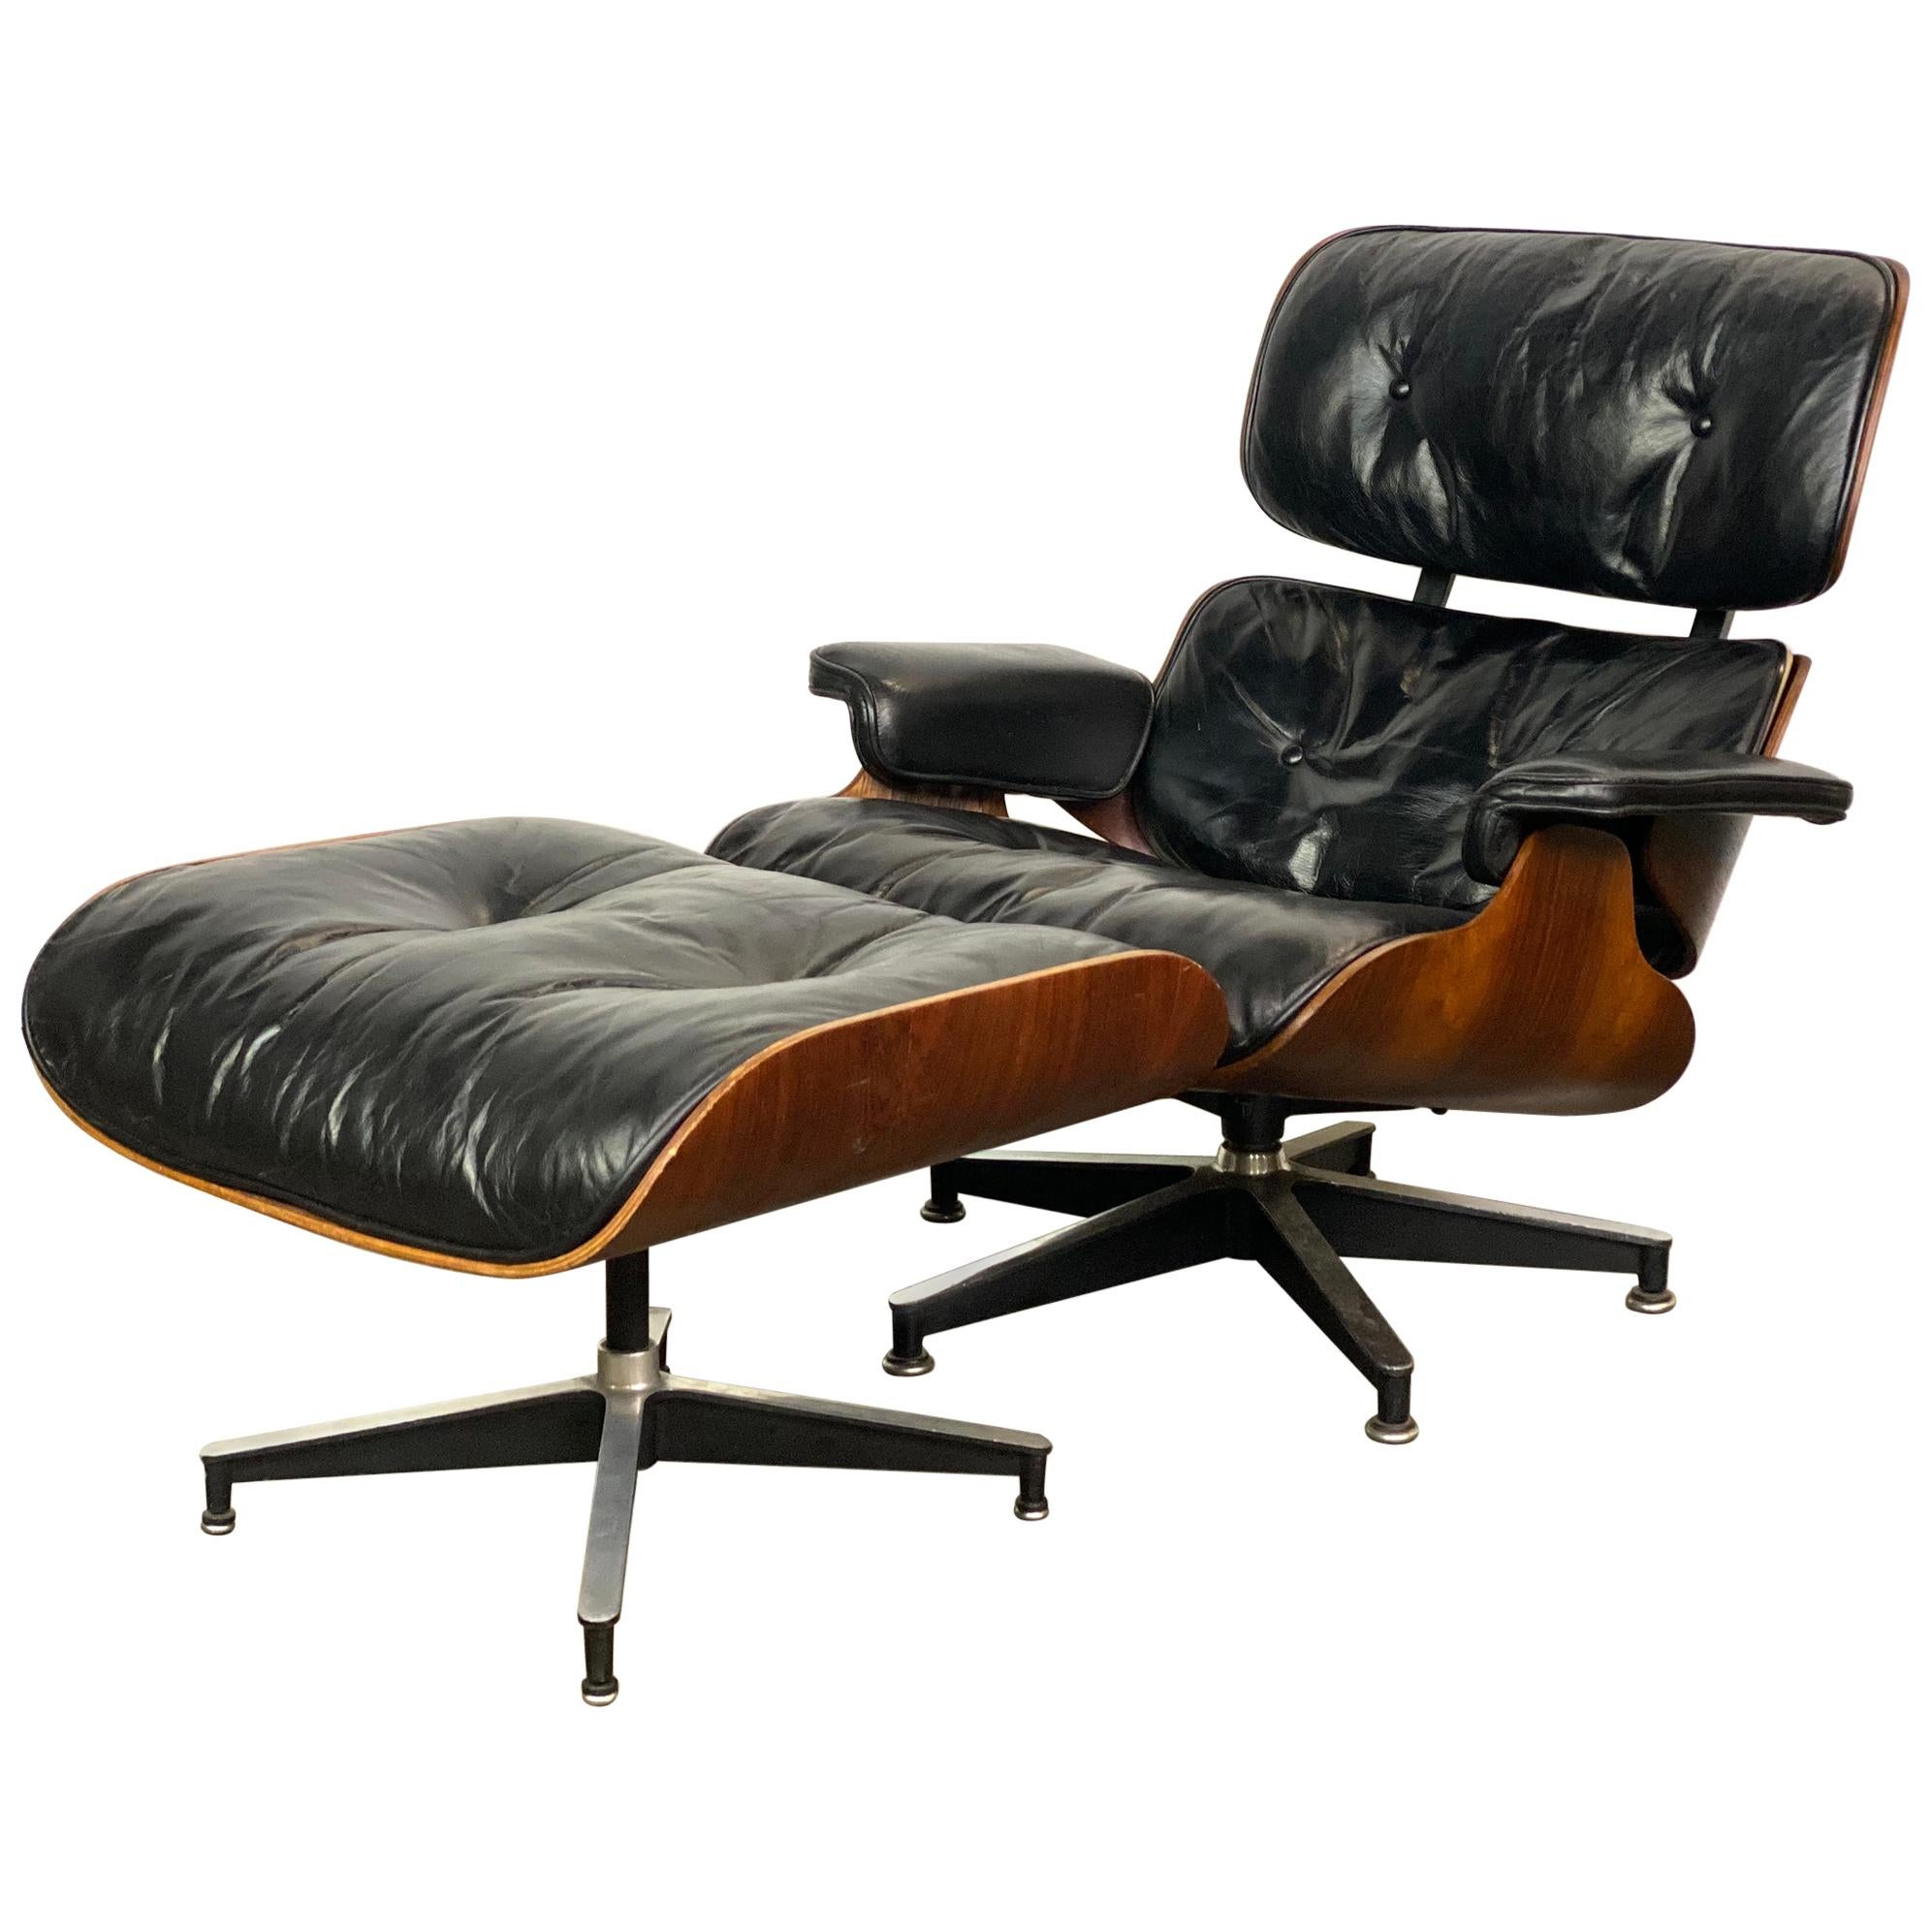 Fantastic Herman Miller Eames Lounge Chair and Ottoman